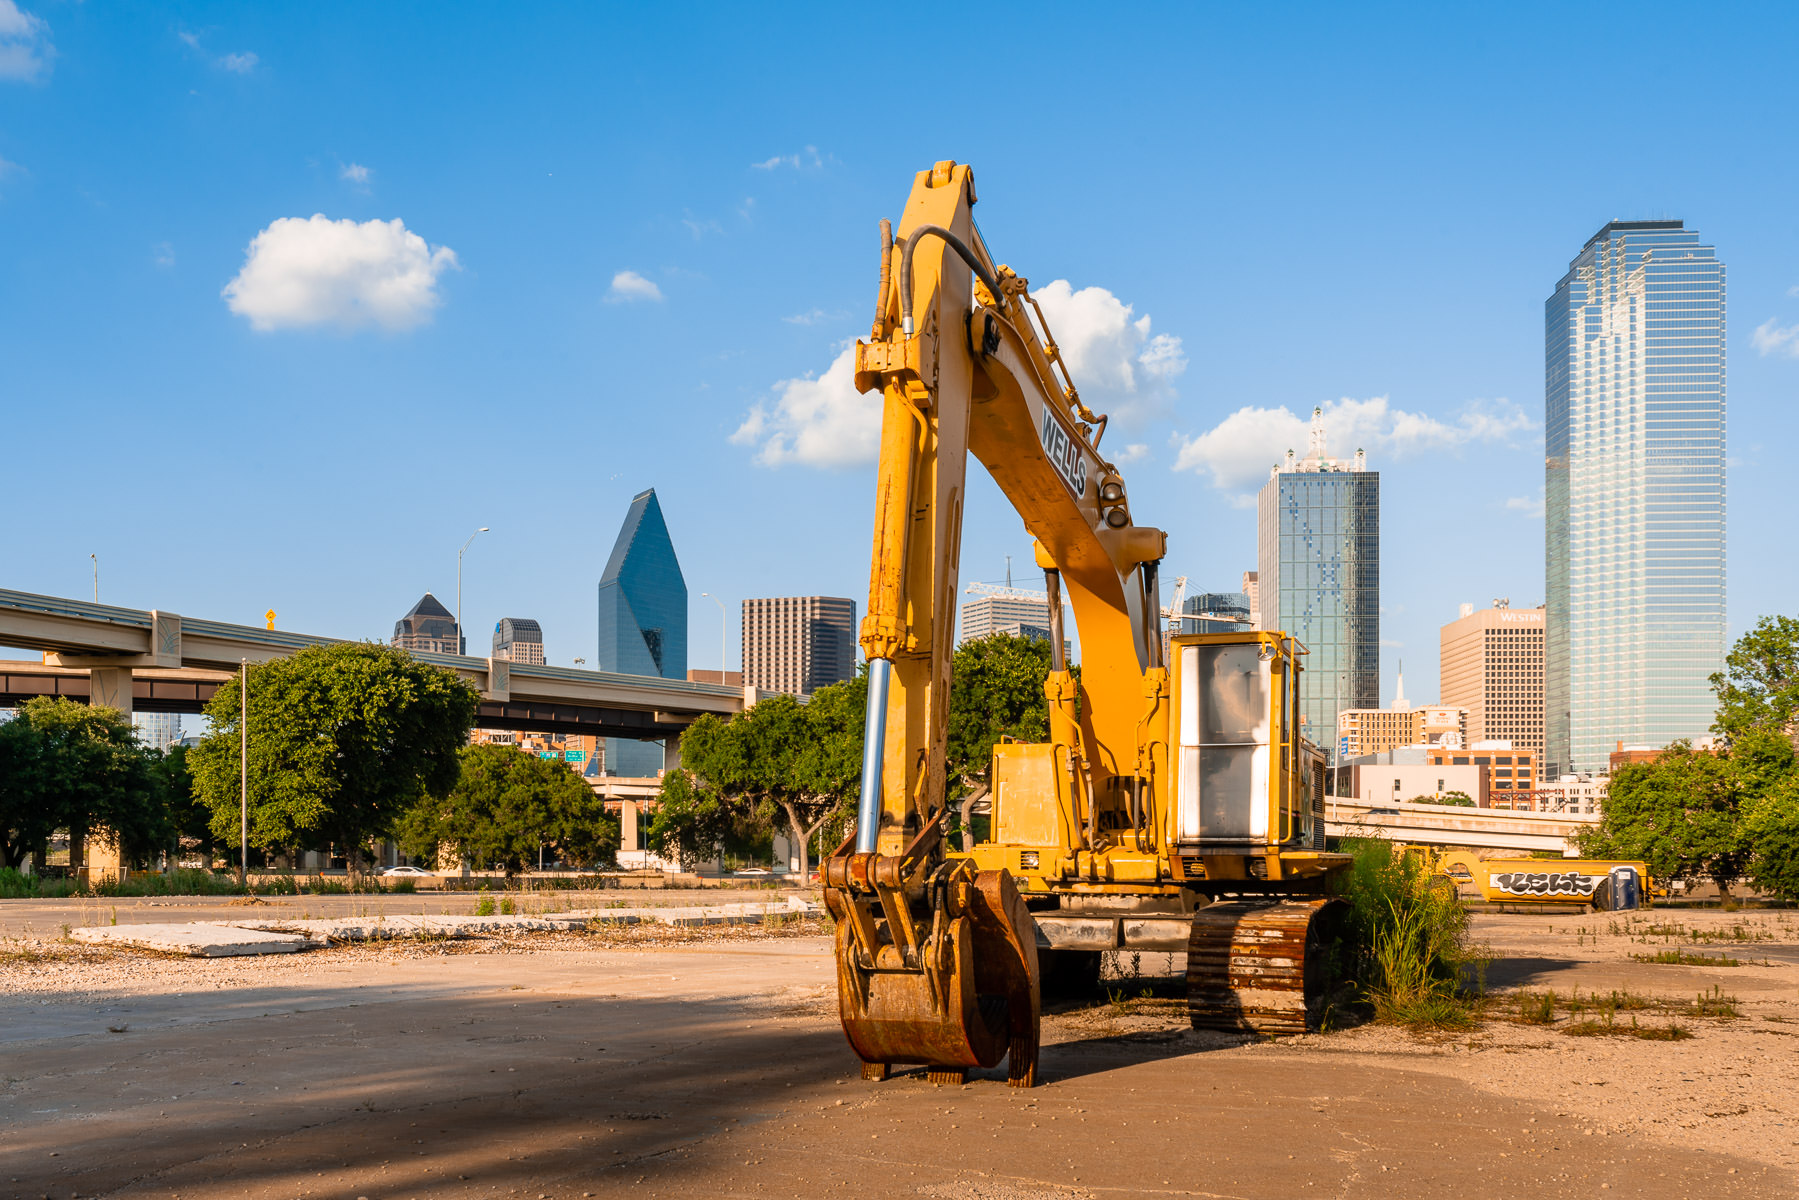 A backhoe sits idle in a vacant lot near Downtown Dallas.